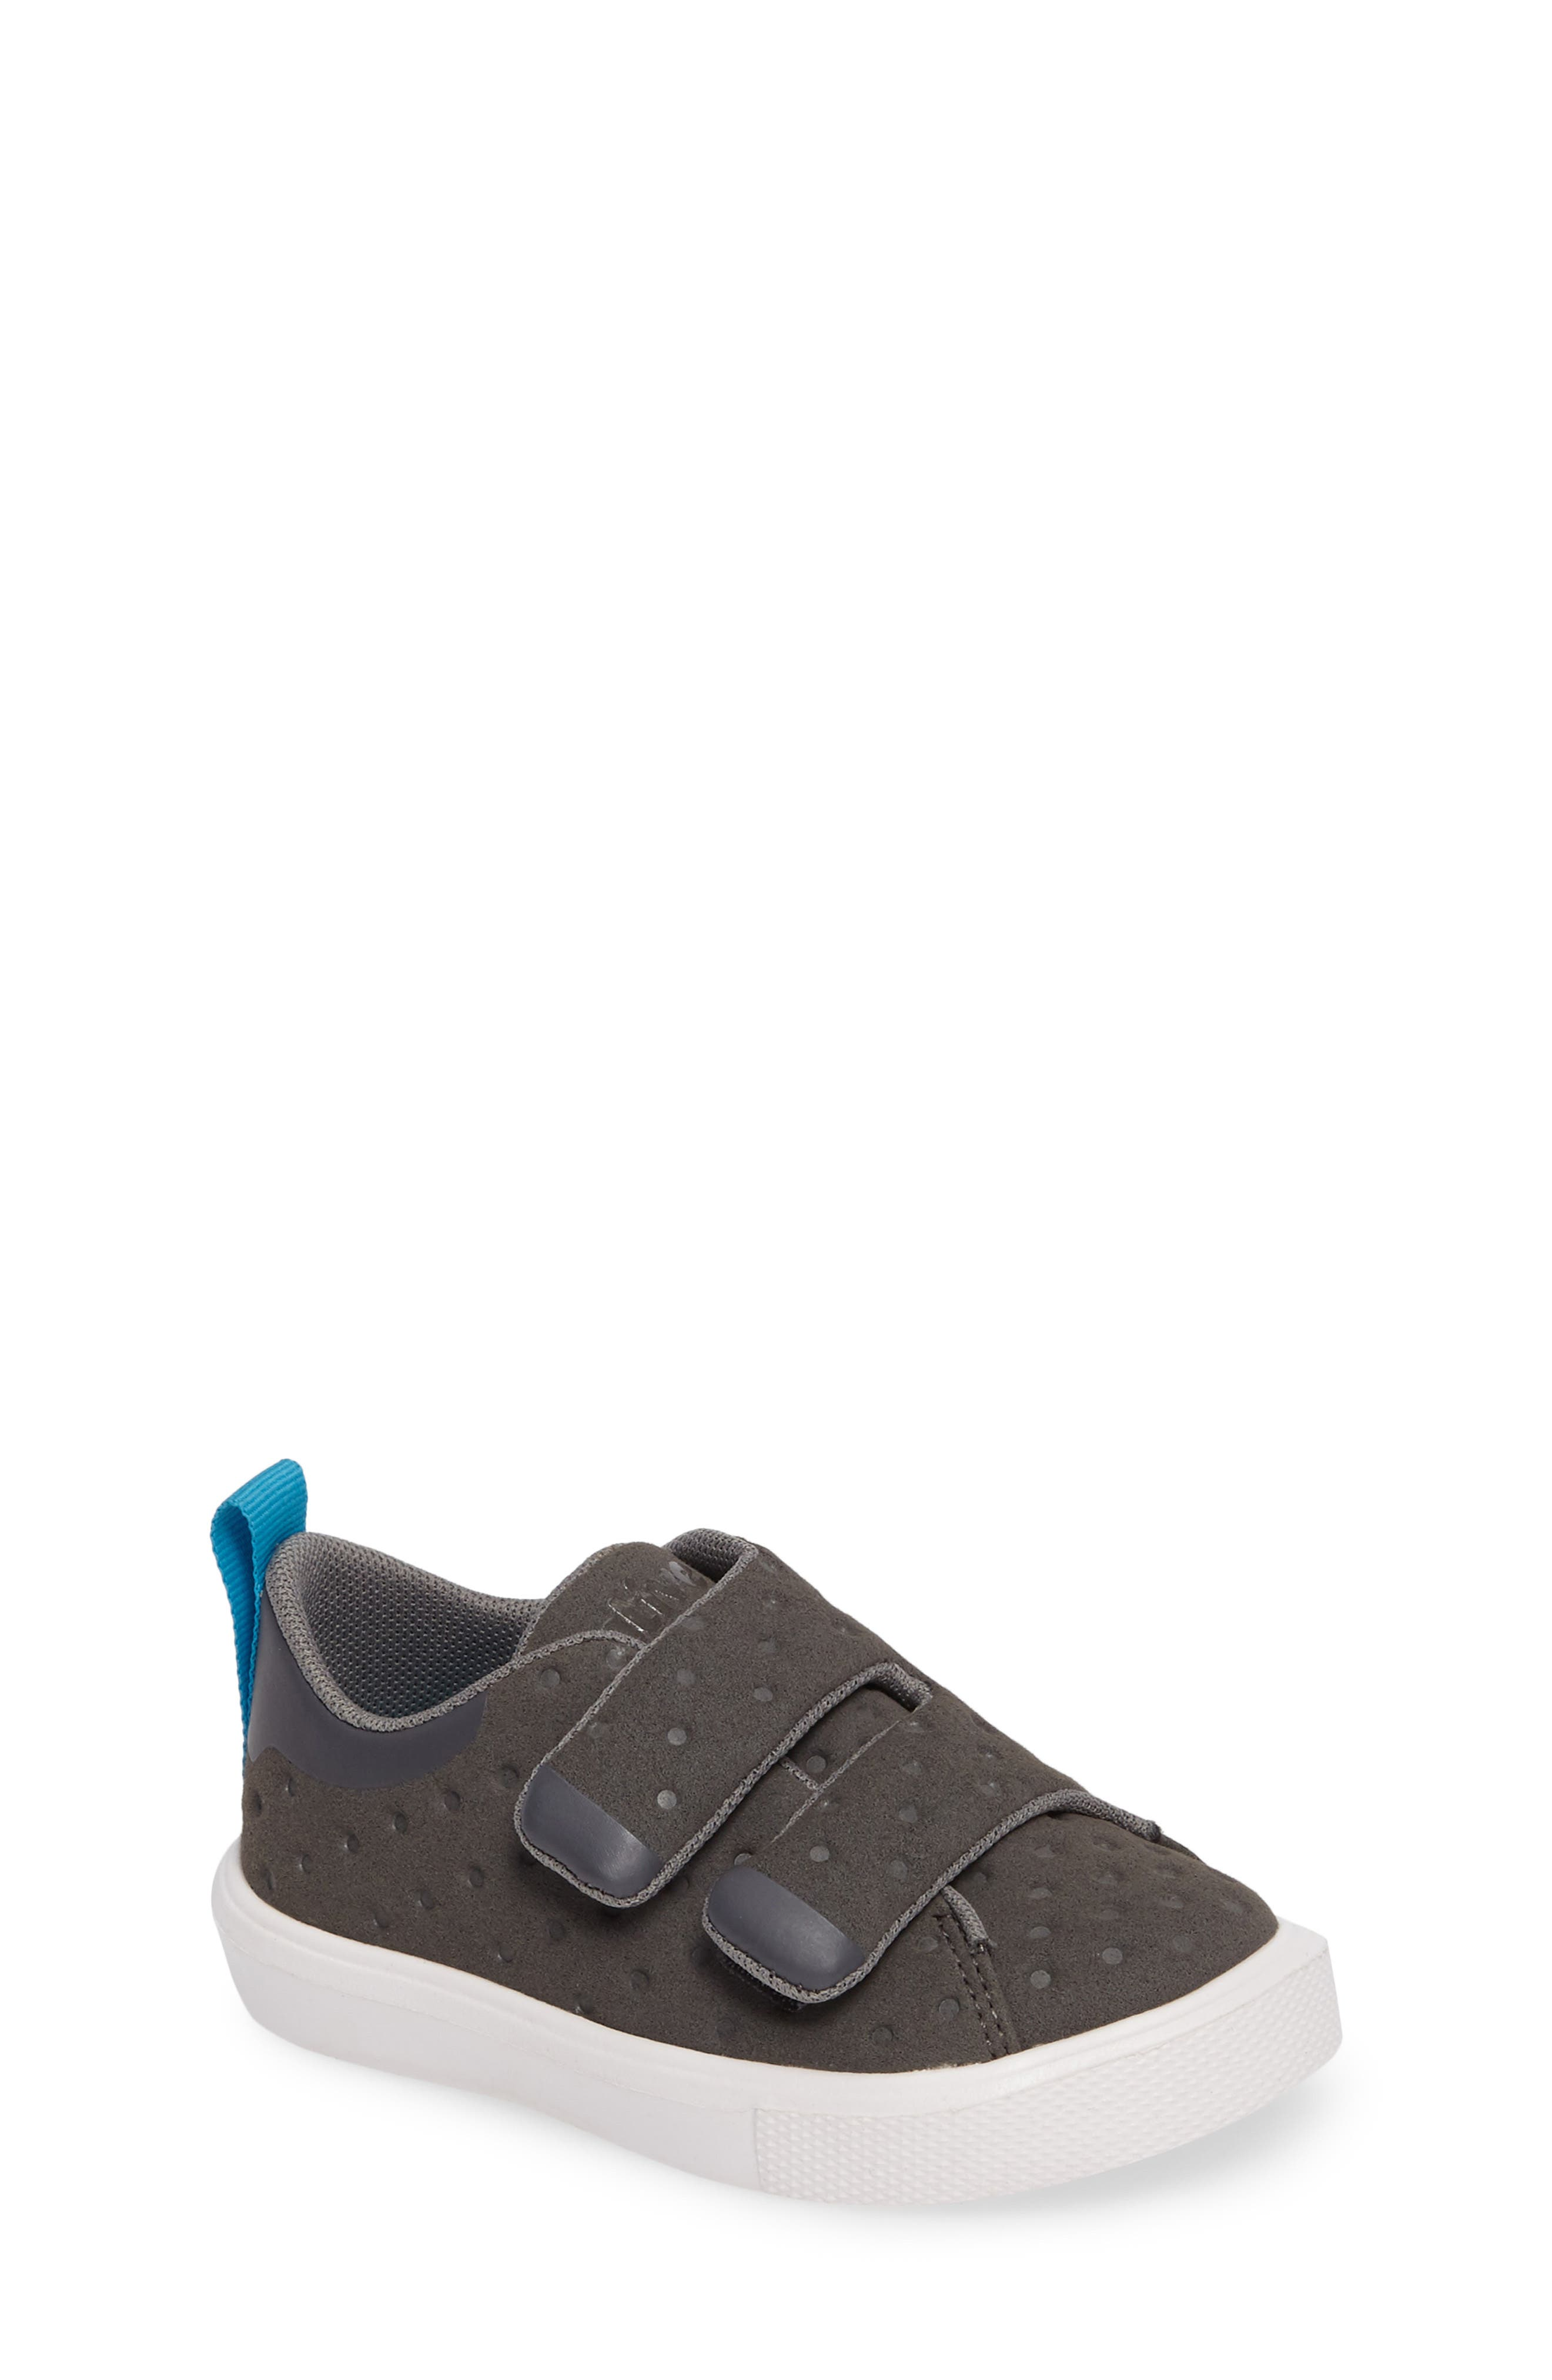 Monaco Sneaker,                             Main thumbnail 1, color,                             DUBLIN GREY/ SHELL WHITE